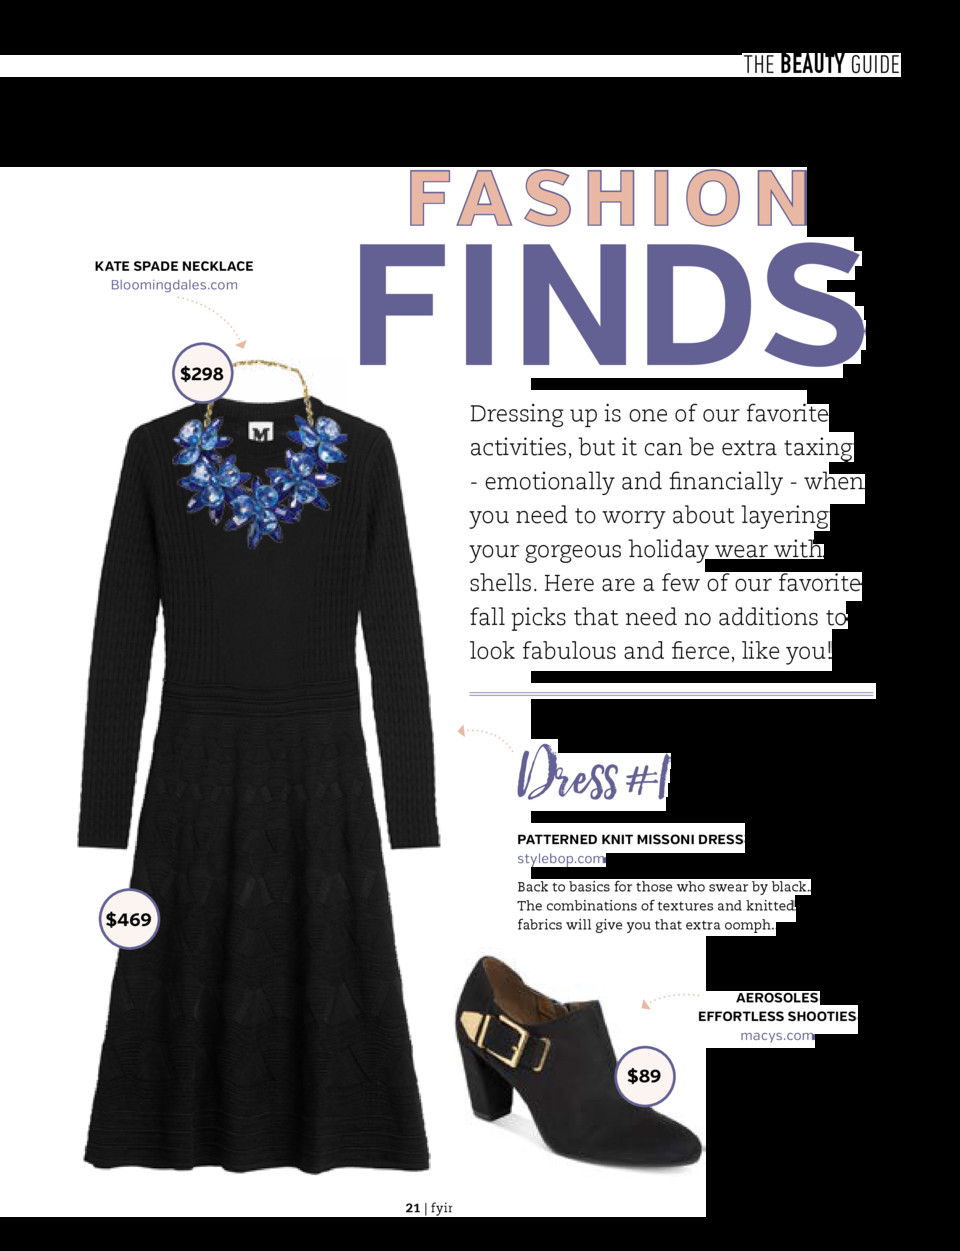 Macys Kate Spade Vase Of October 2016 Simplebooklet Com Pertaining to the Beauty Guide the Beauty Guide Fa S H I O N Kate Spade Necklace Bloomingdales Com Base Always